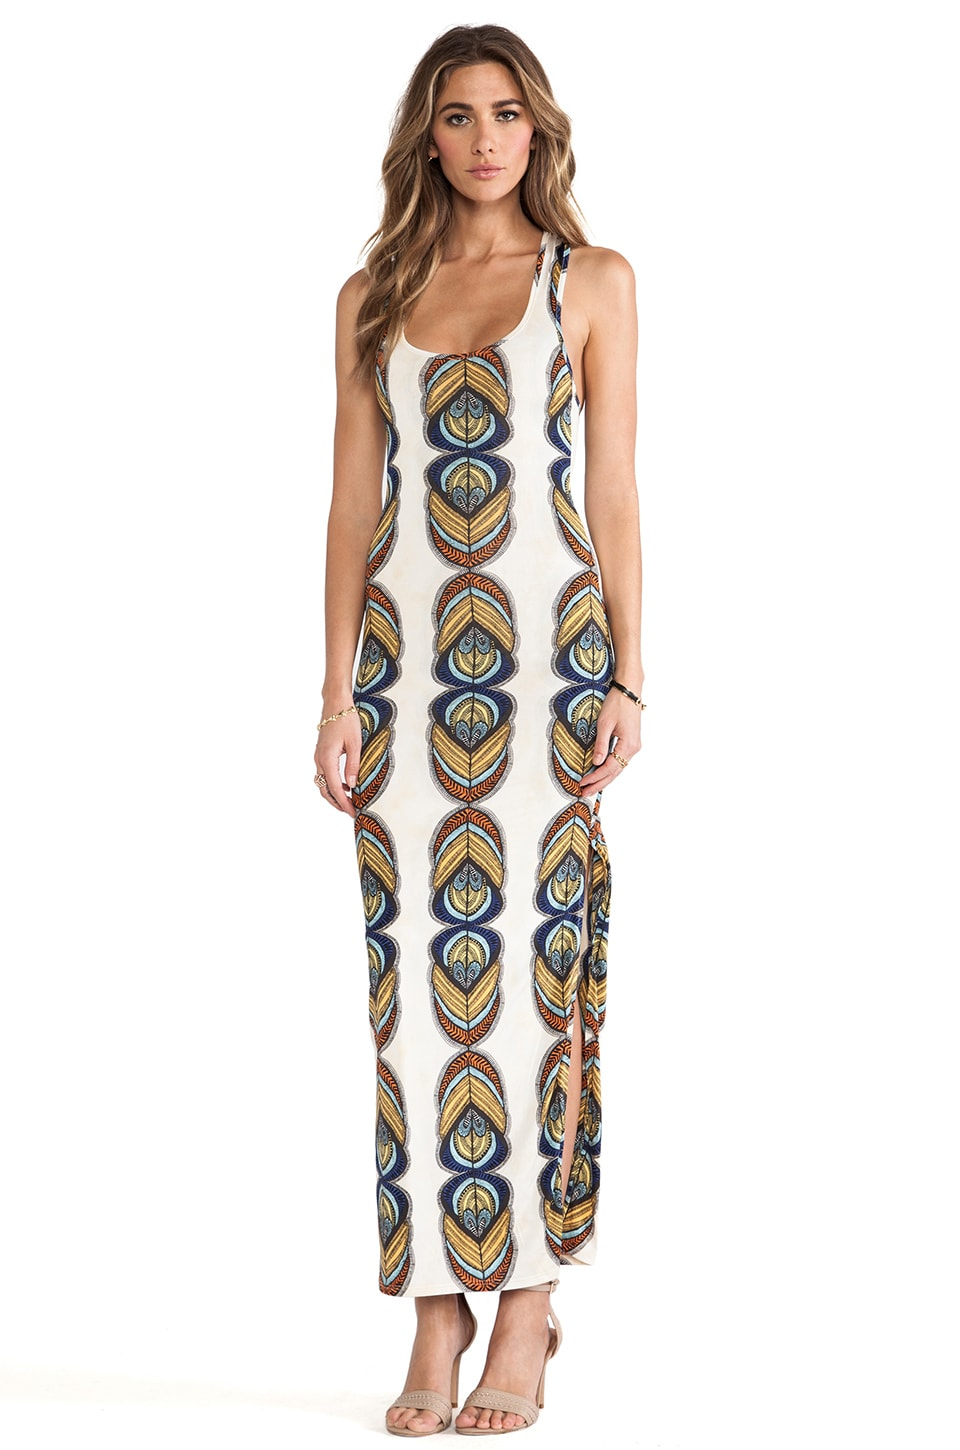 T-Bags LosAngeles Racer Back Maxi Dress w/ Slits in Ivory Feather